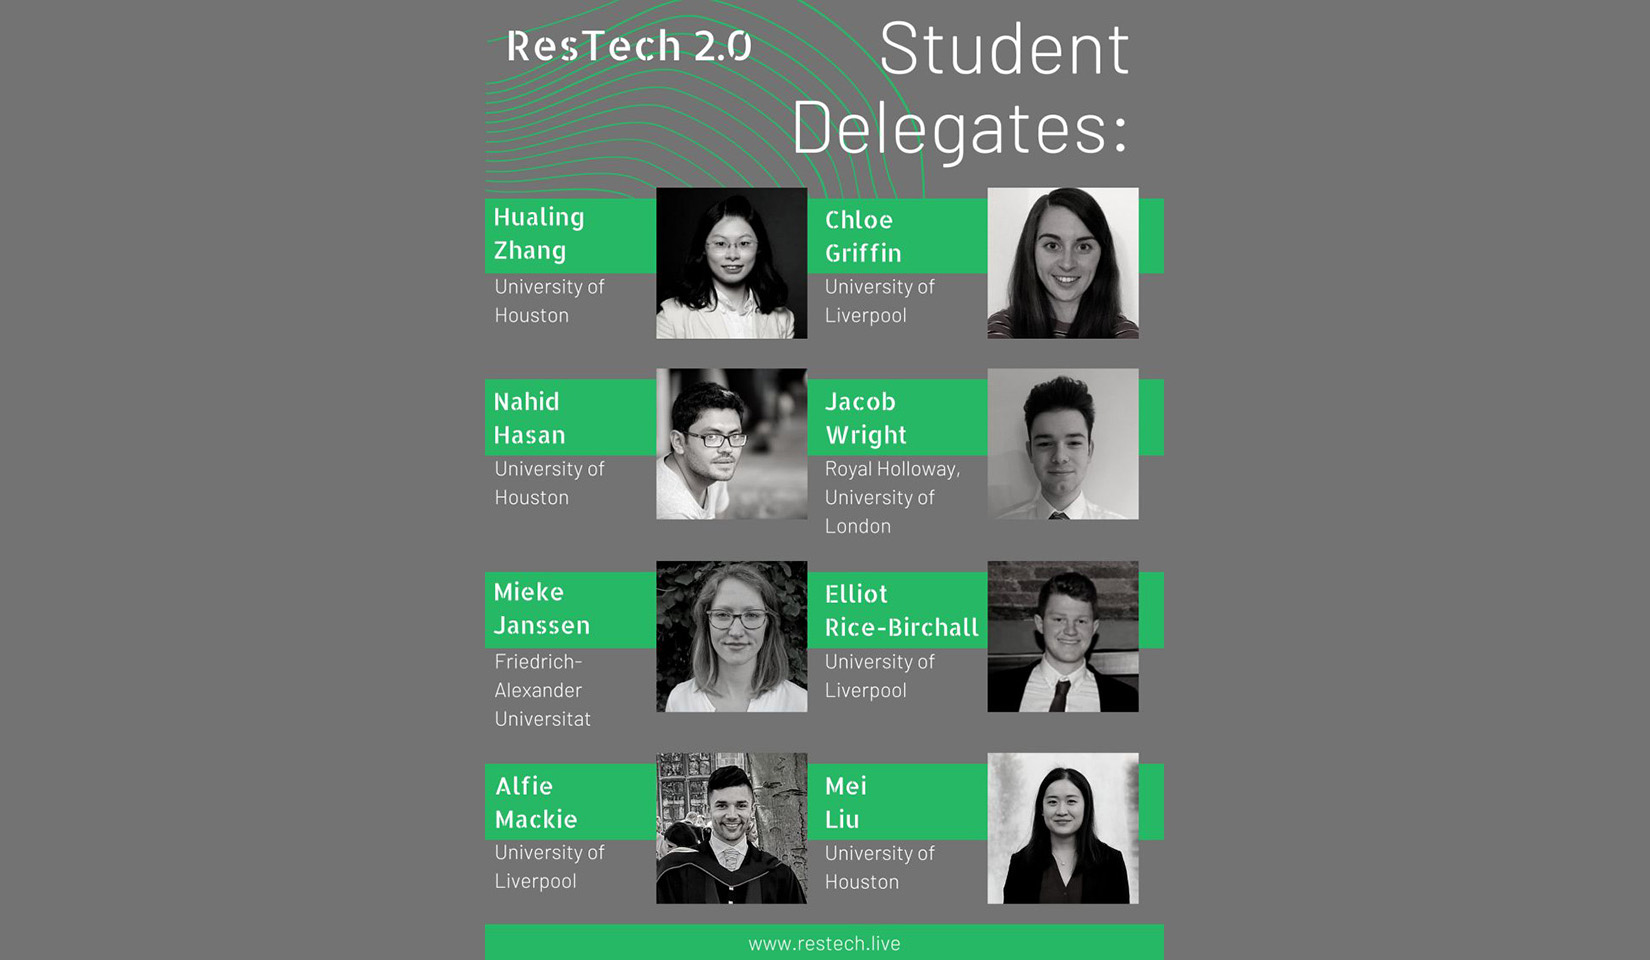 CBTH students Hualing Zhang, Nahid Hasan, and Mei Liu were selected as student delegates for the ResTech 2.0 Virtual Reservoir Conference